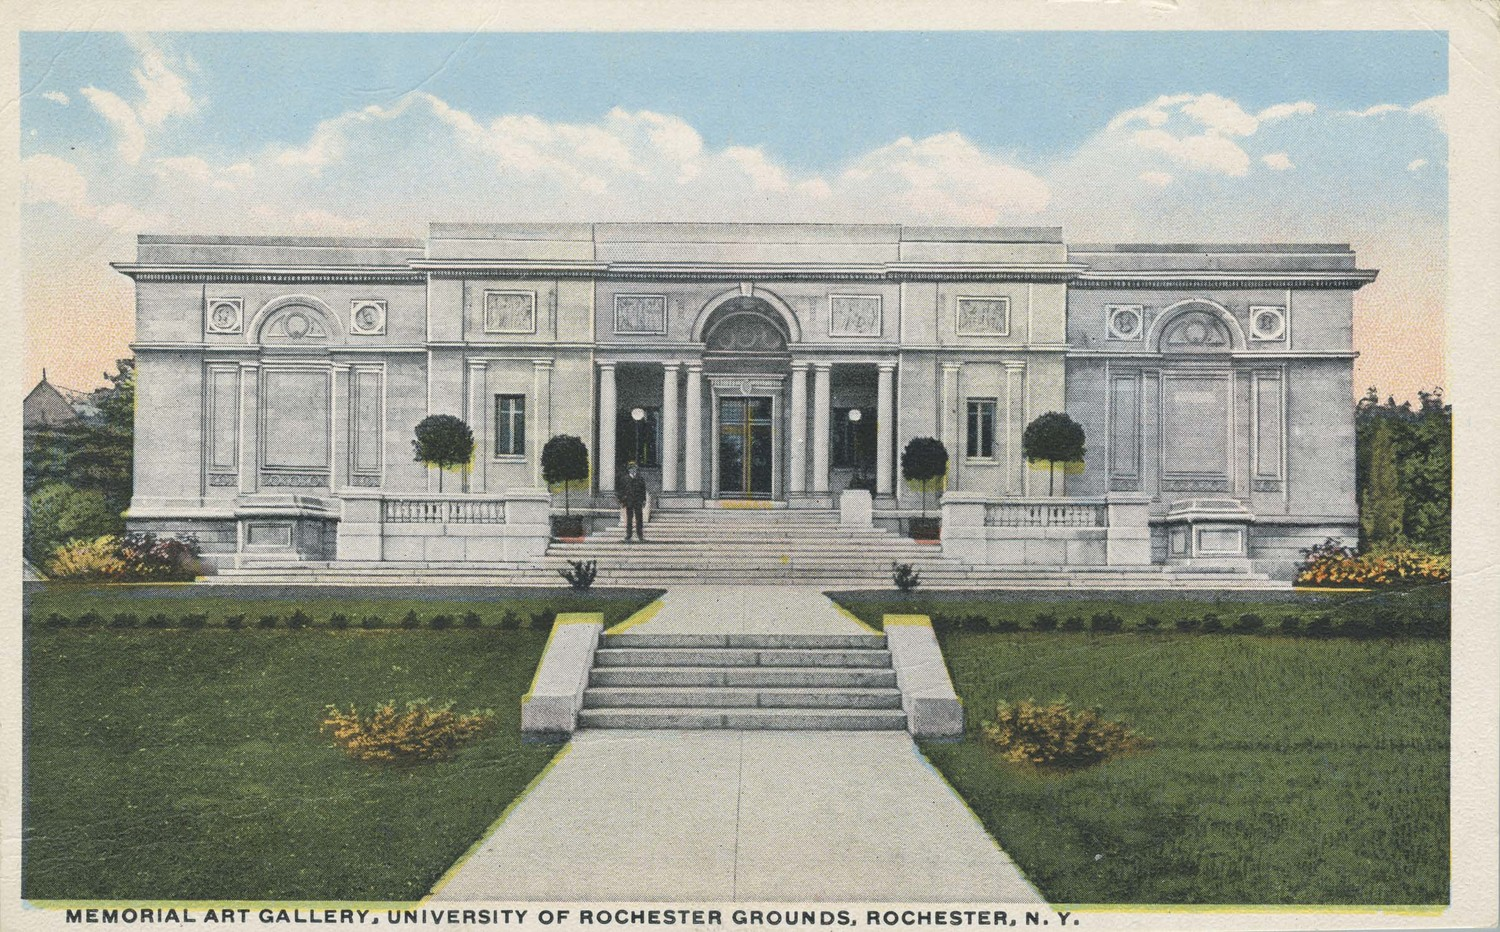 Memorial Art Gallery, University of Rochester Grounds, Rochester, N.Y.